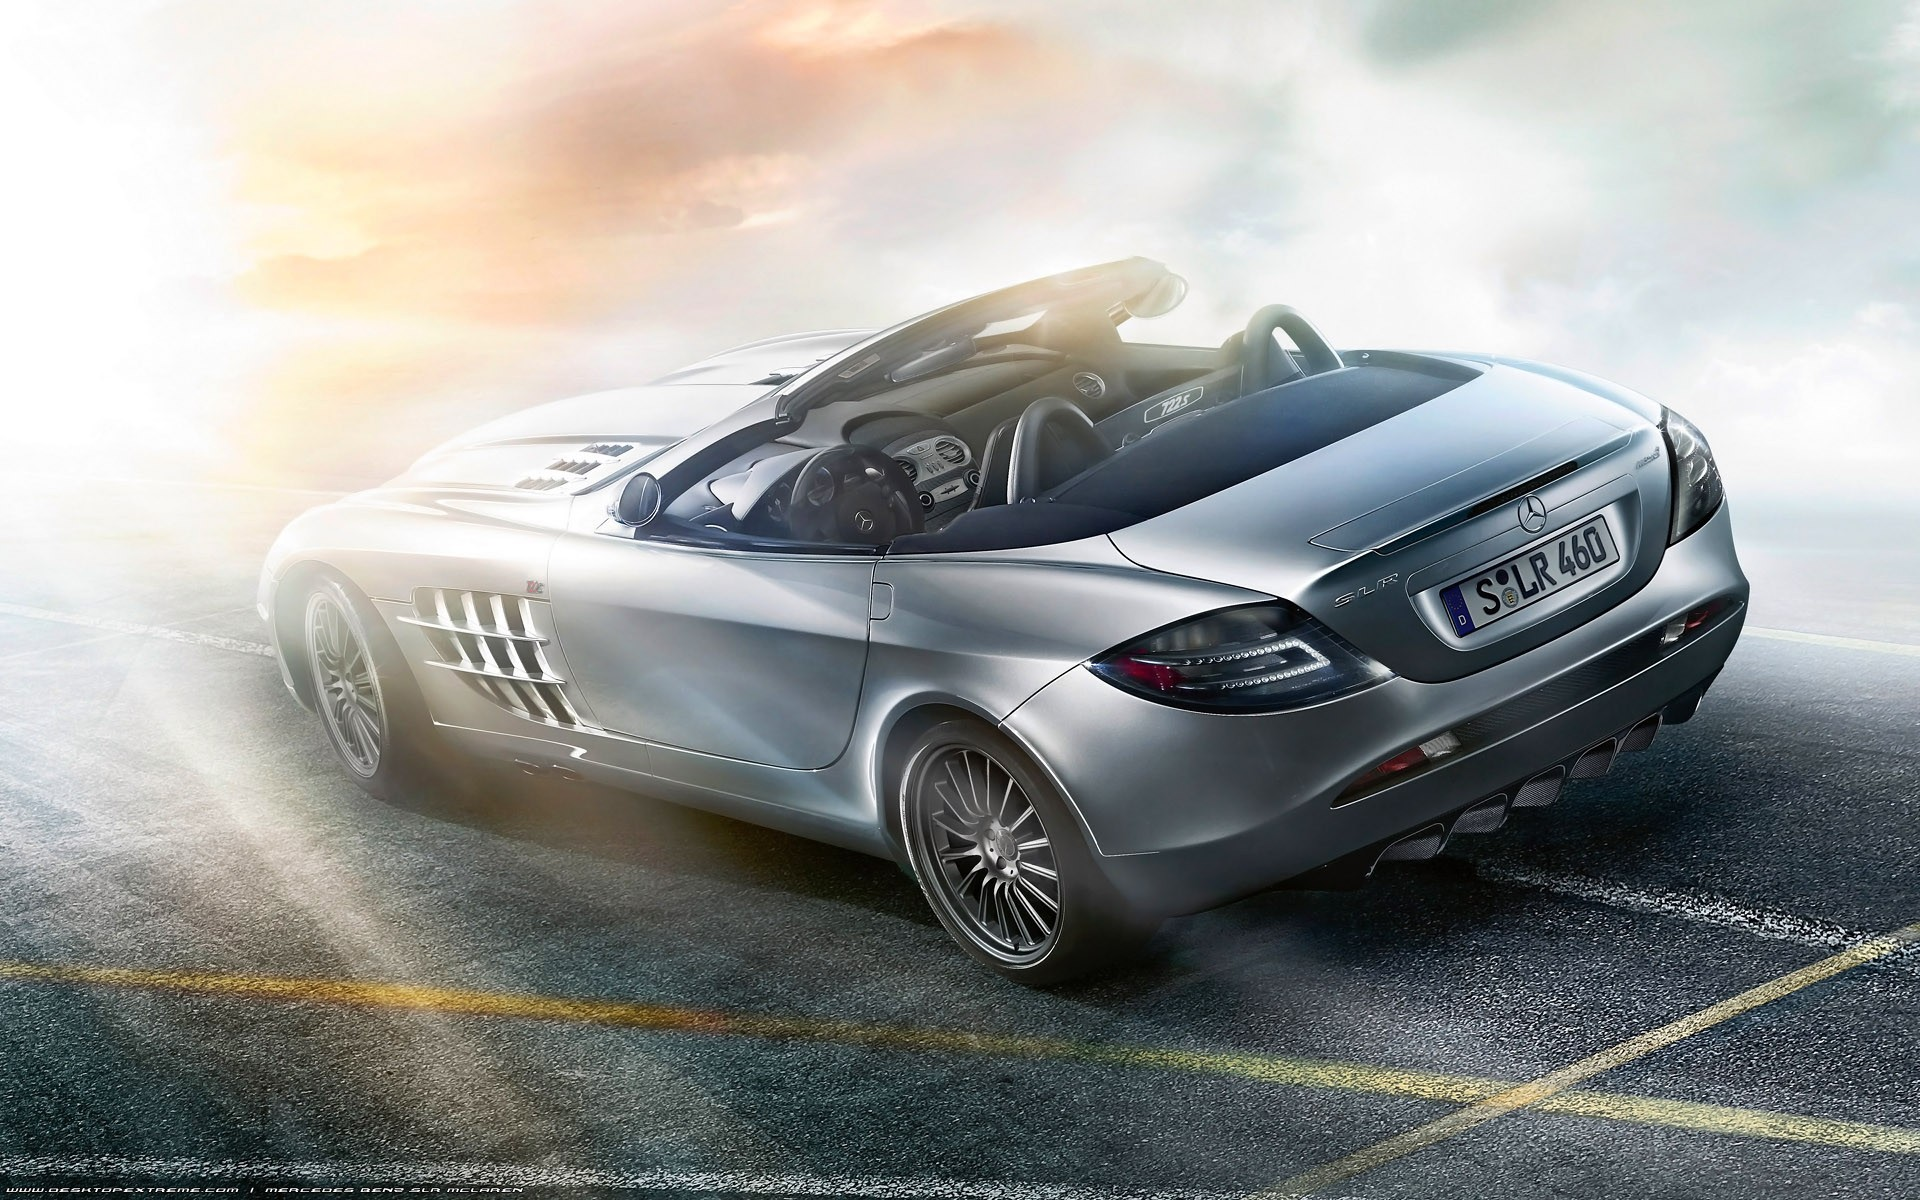 cars Mercedes-Benz Mercedes SLR HD Wallpaper